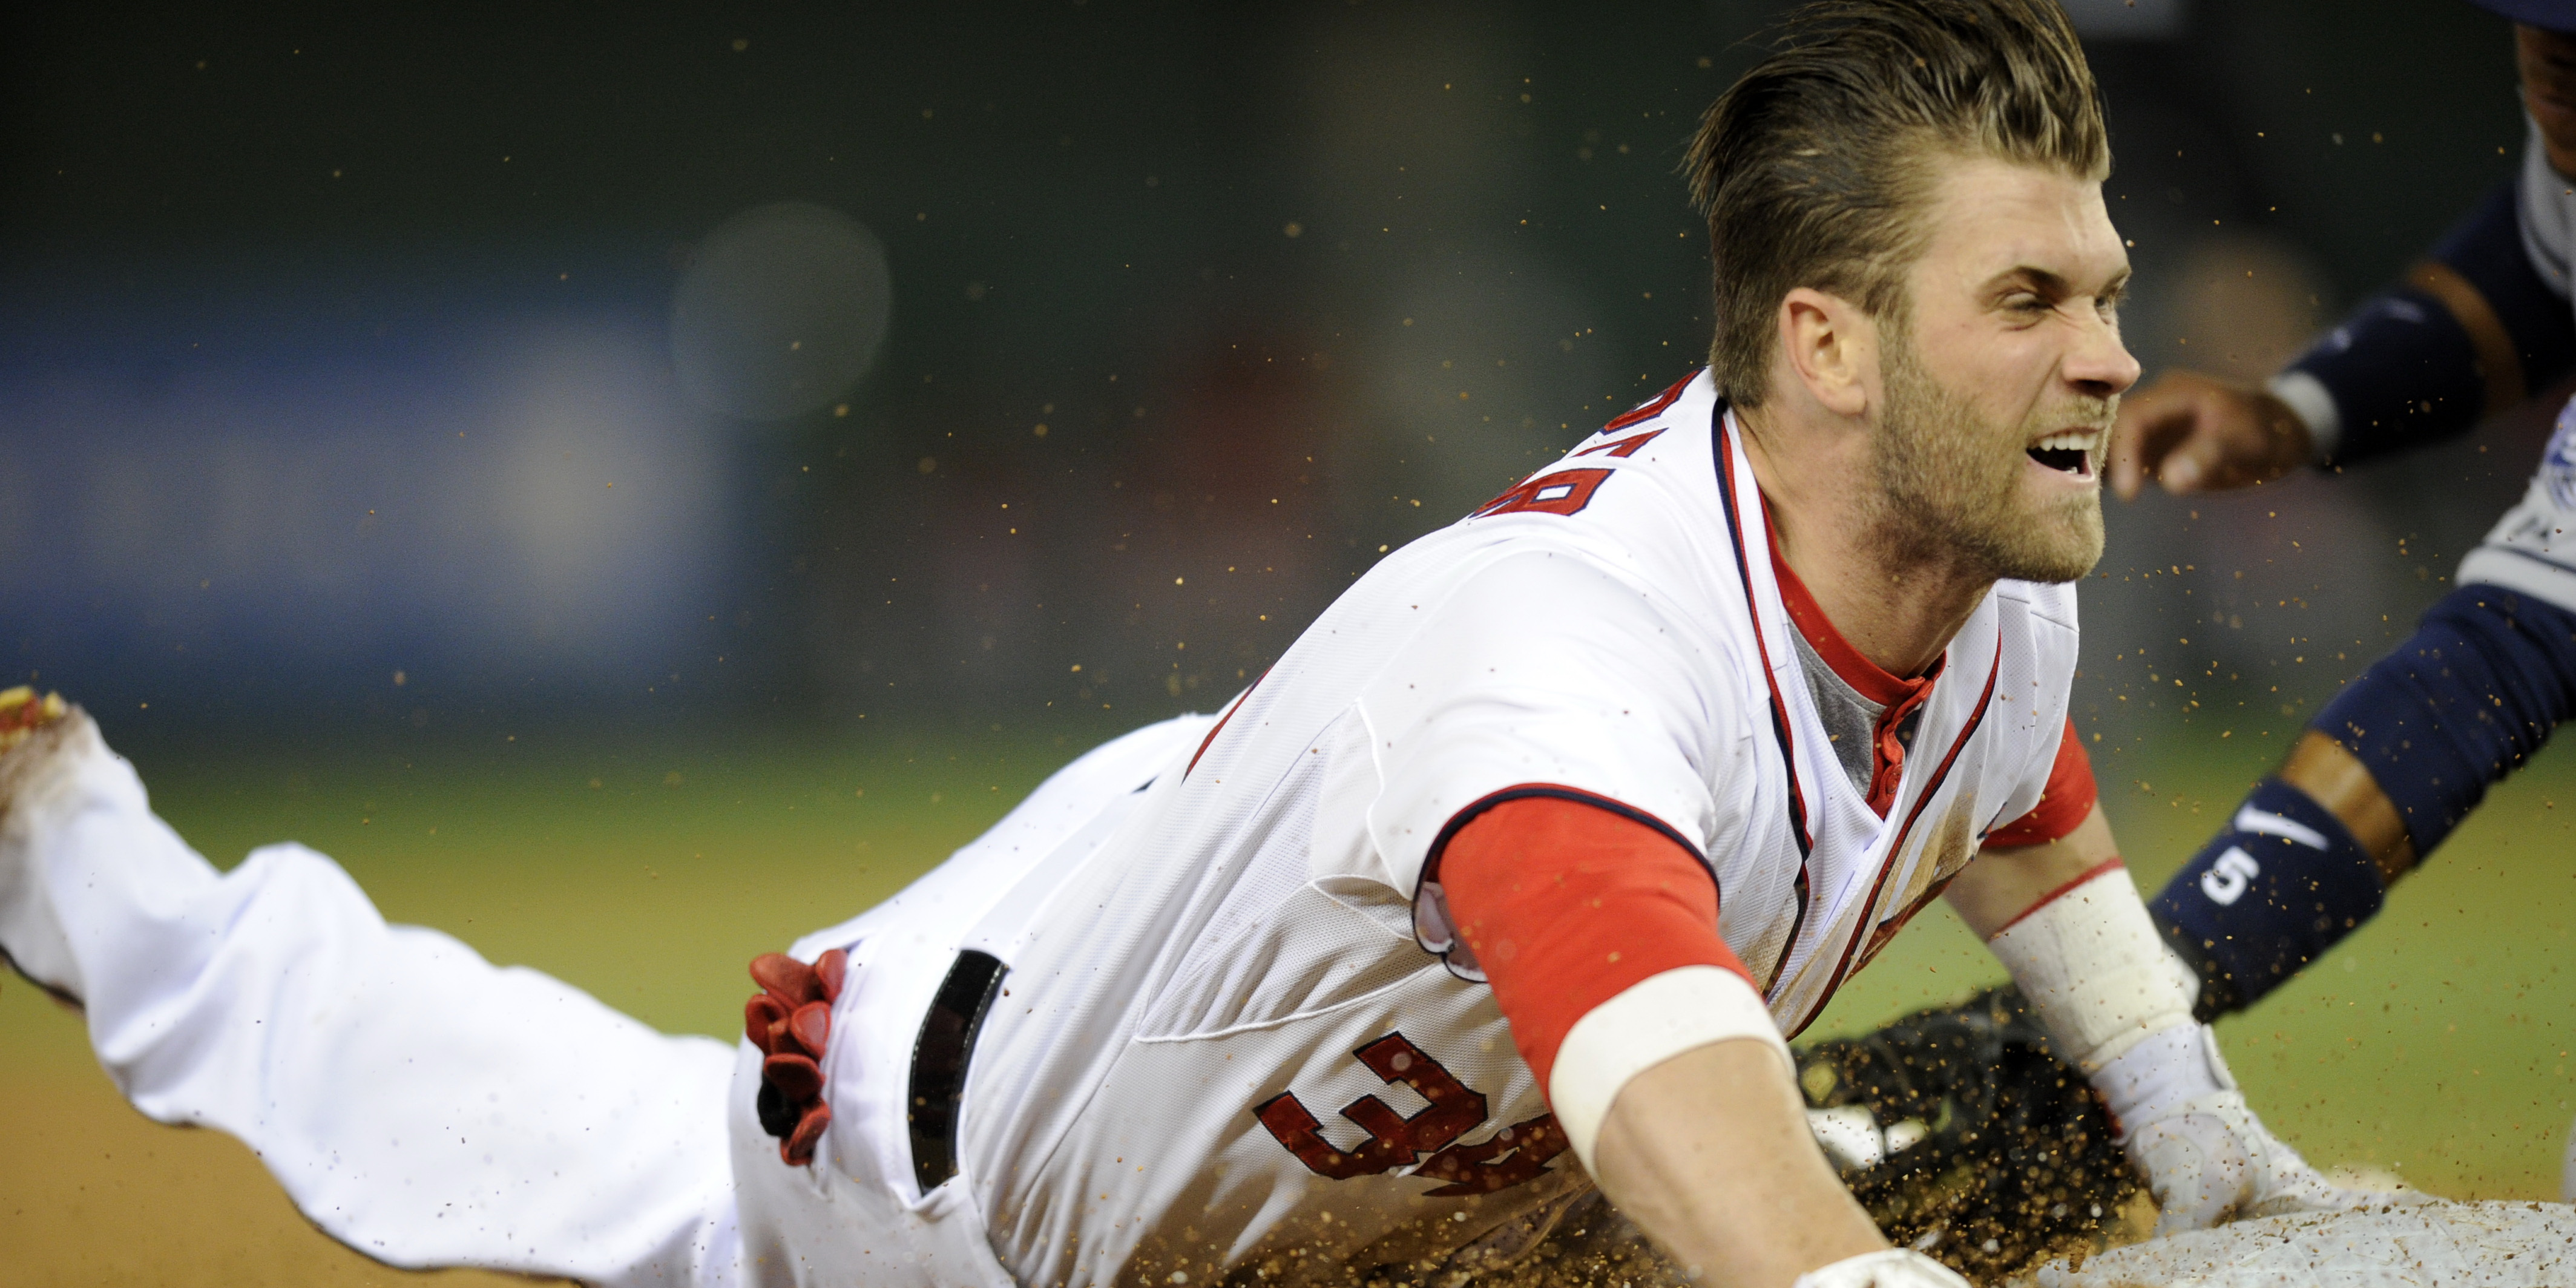 Bryce Harper Net Worth 2019 - Biography, Salary & Earnings